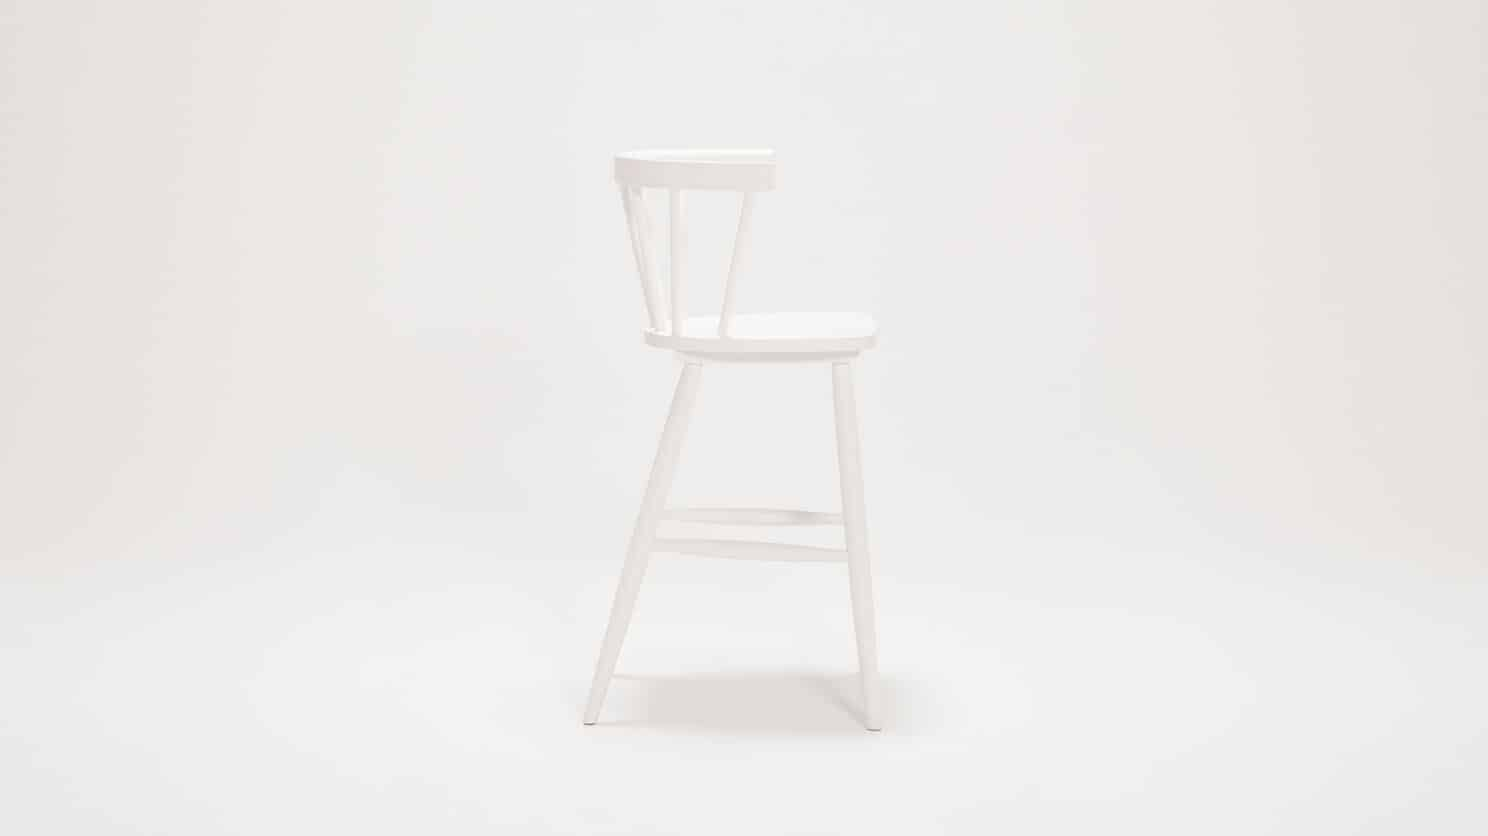 3020 270 par 9 stools lyla arm bar stool white side 01